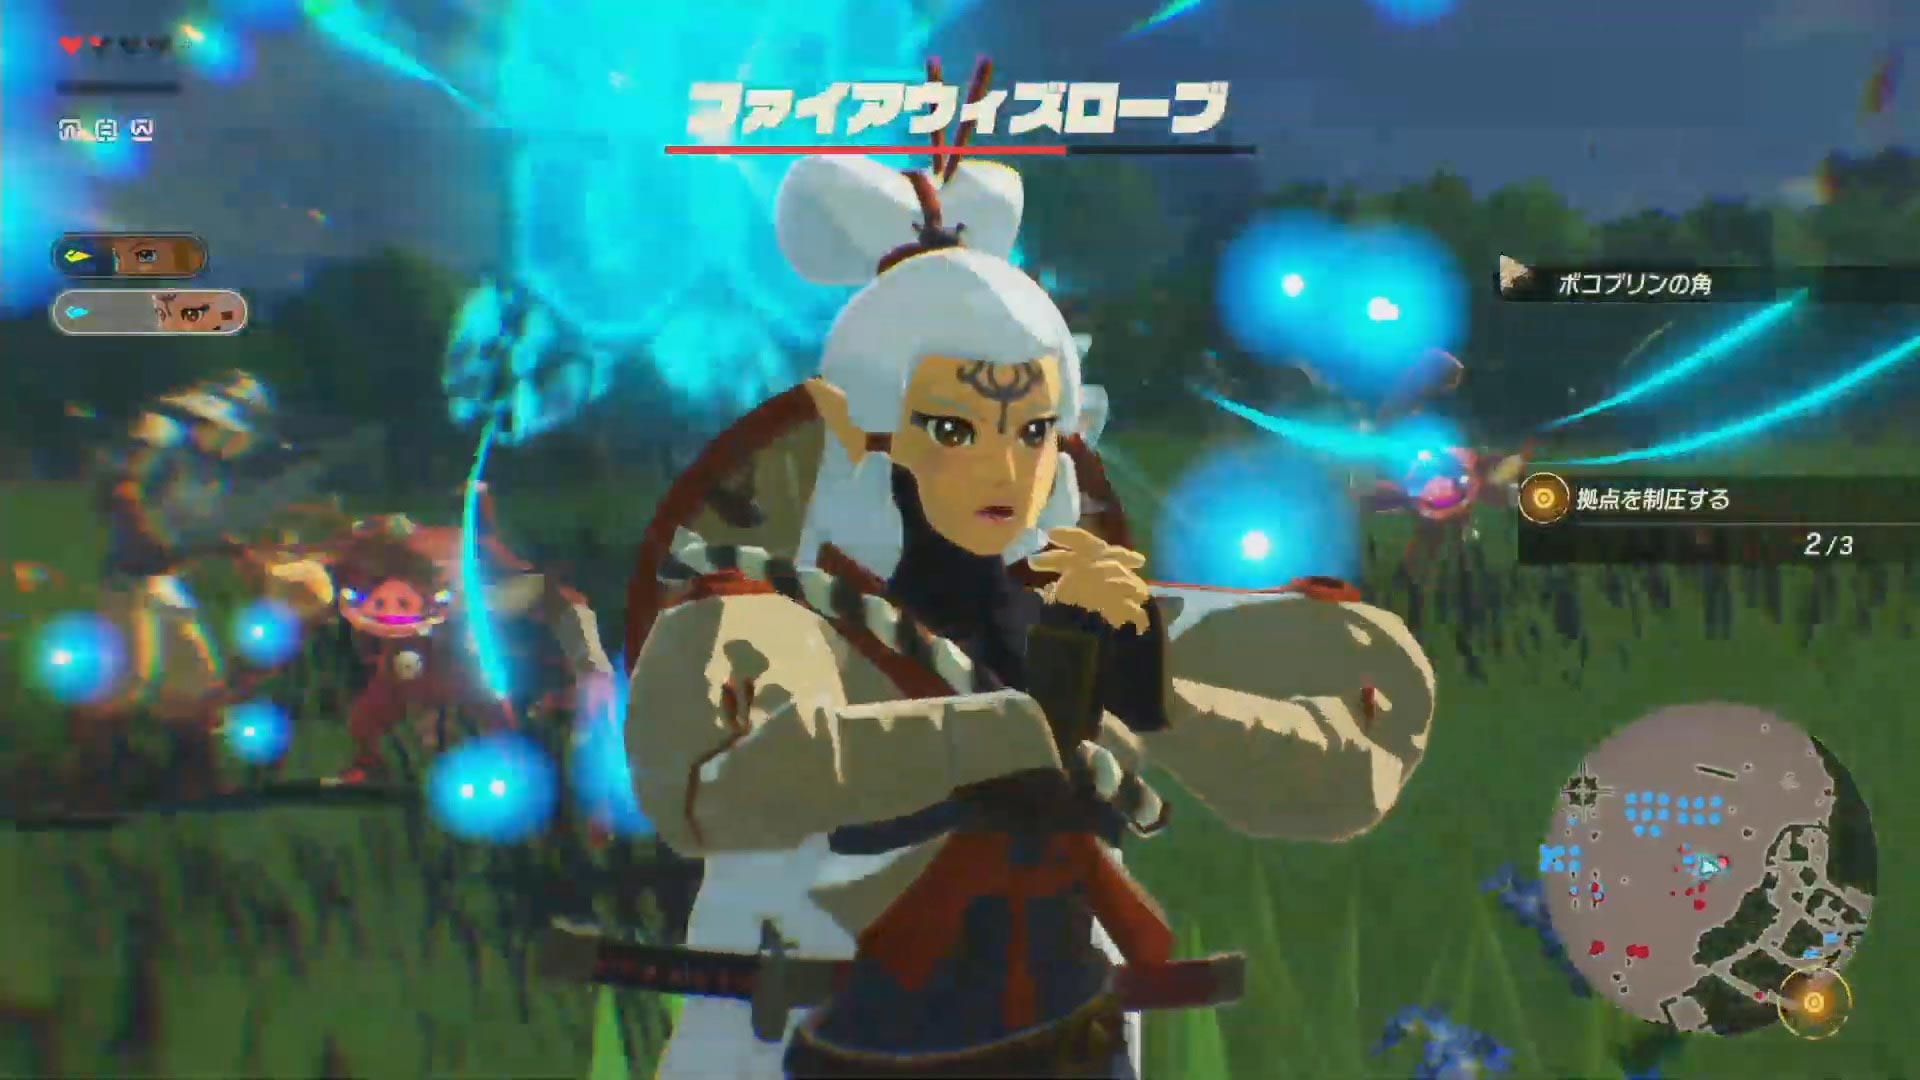 Impa In Hyrule Warriors Age Of Calamity 1 Out Of 3 Image Gallery